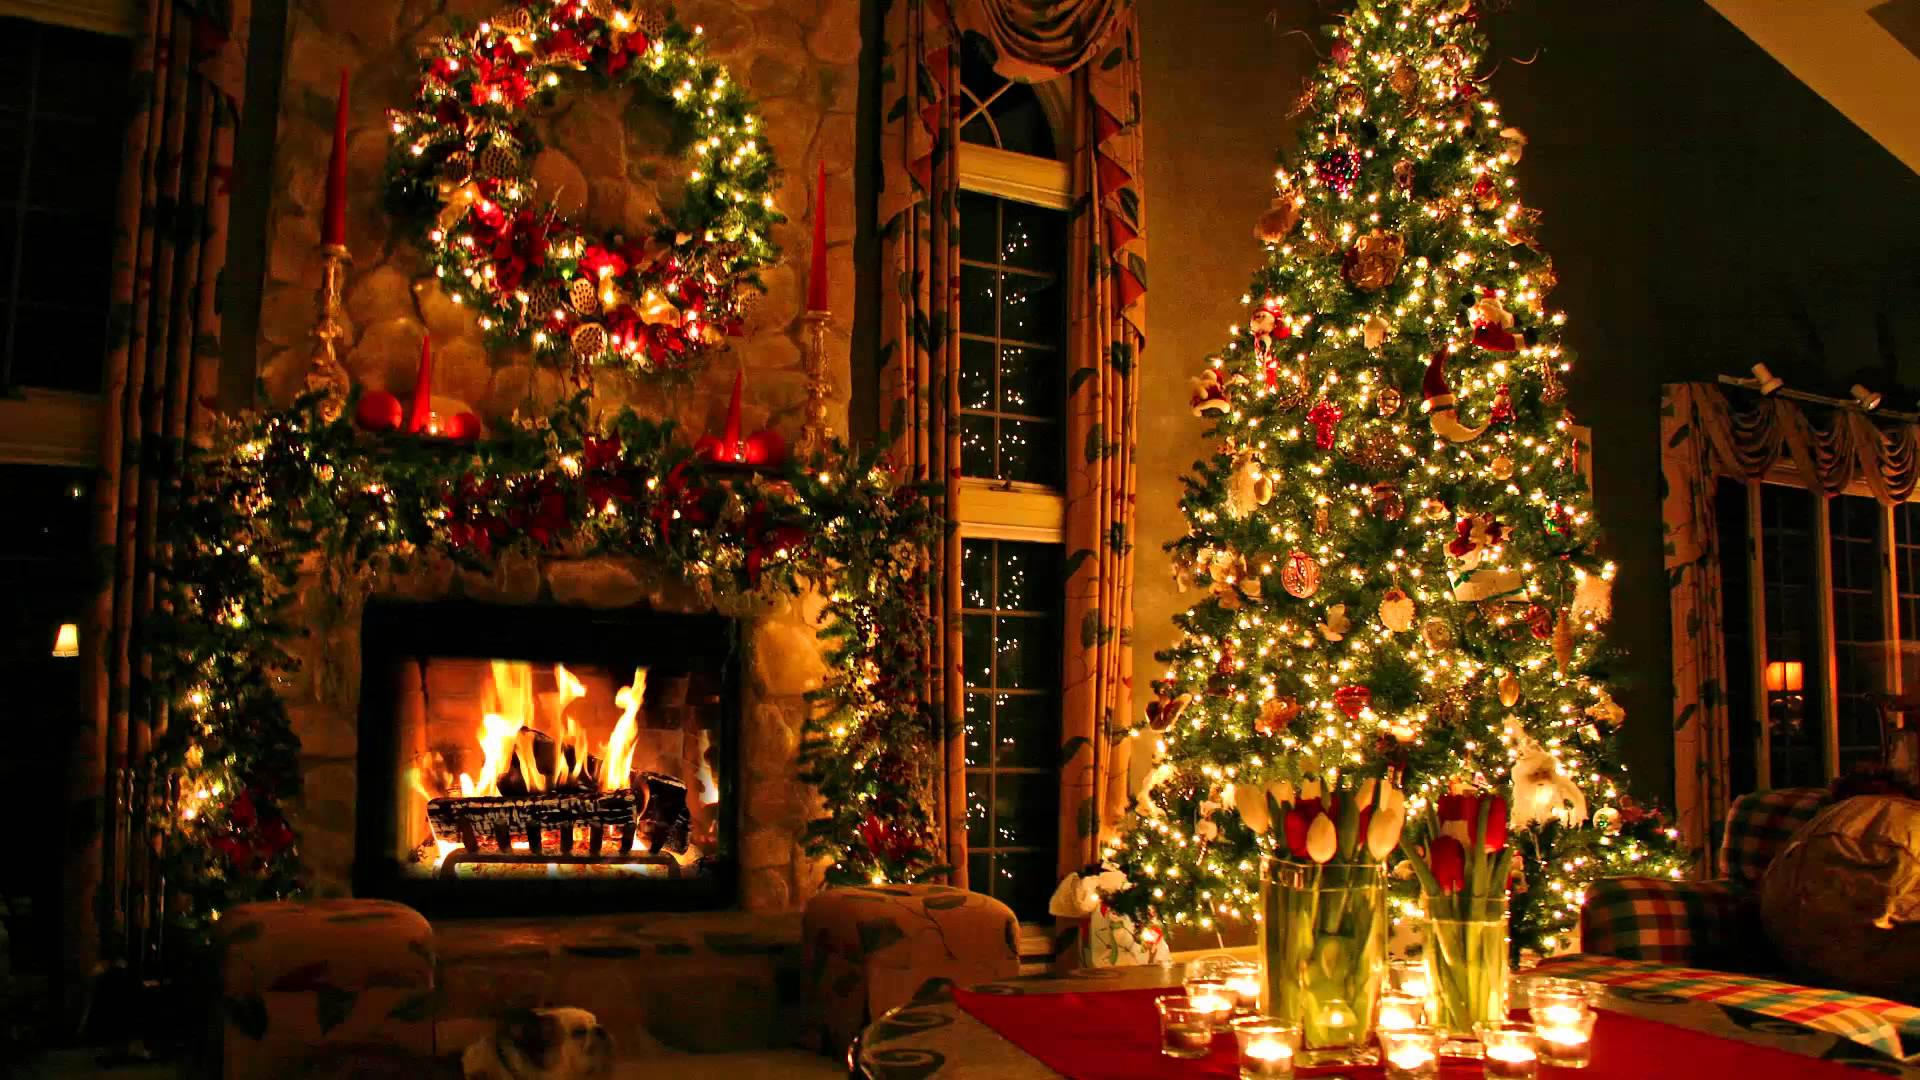 Holiday Christmas wallpapers (Desktop, Phone, Tablet) - Awesome ...